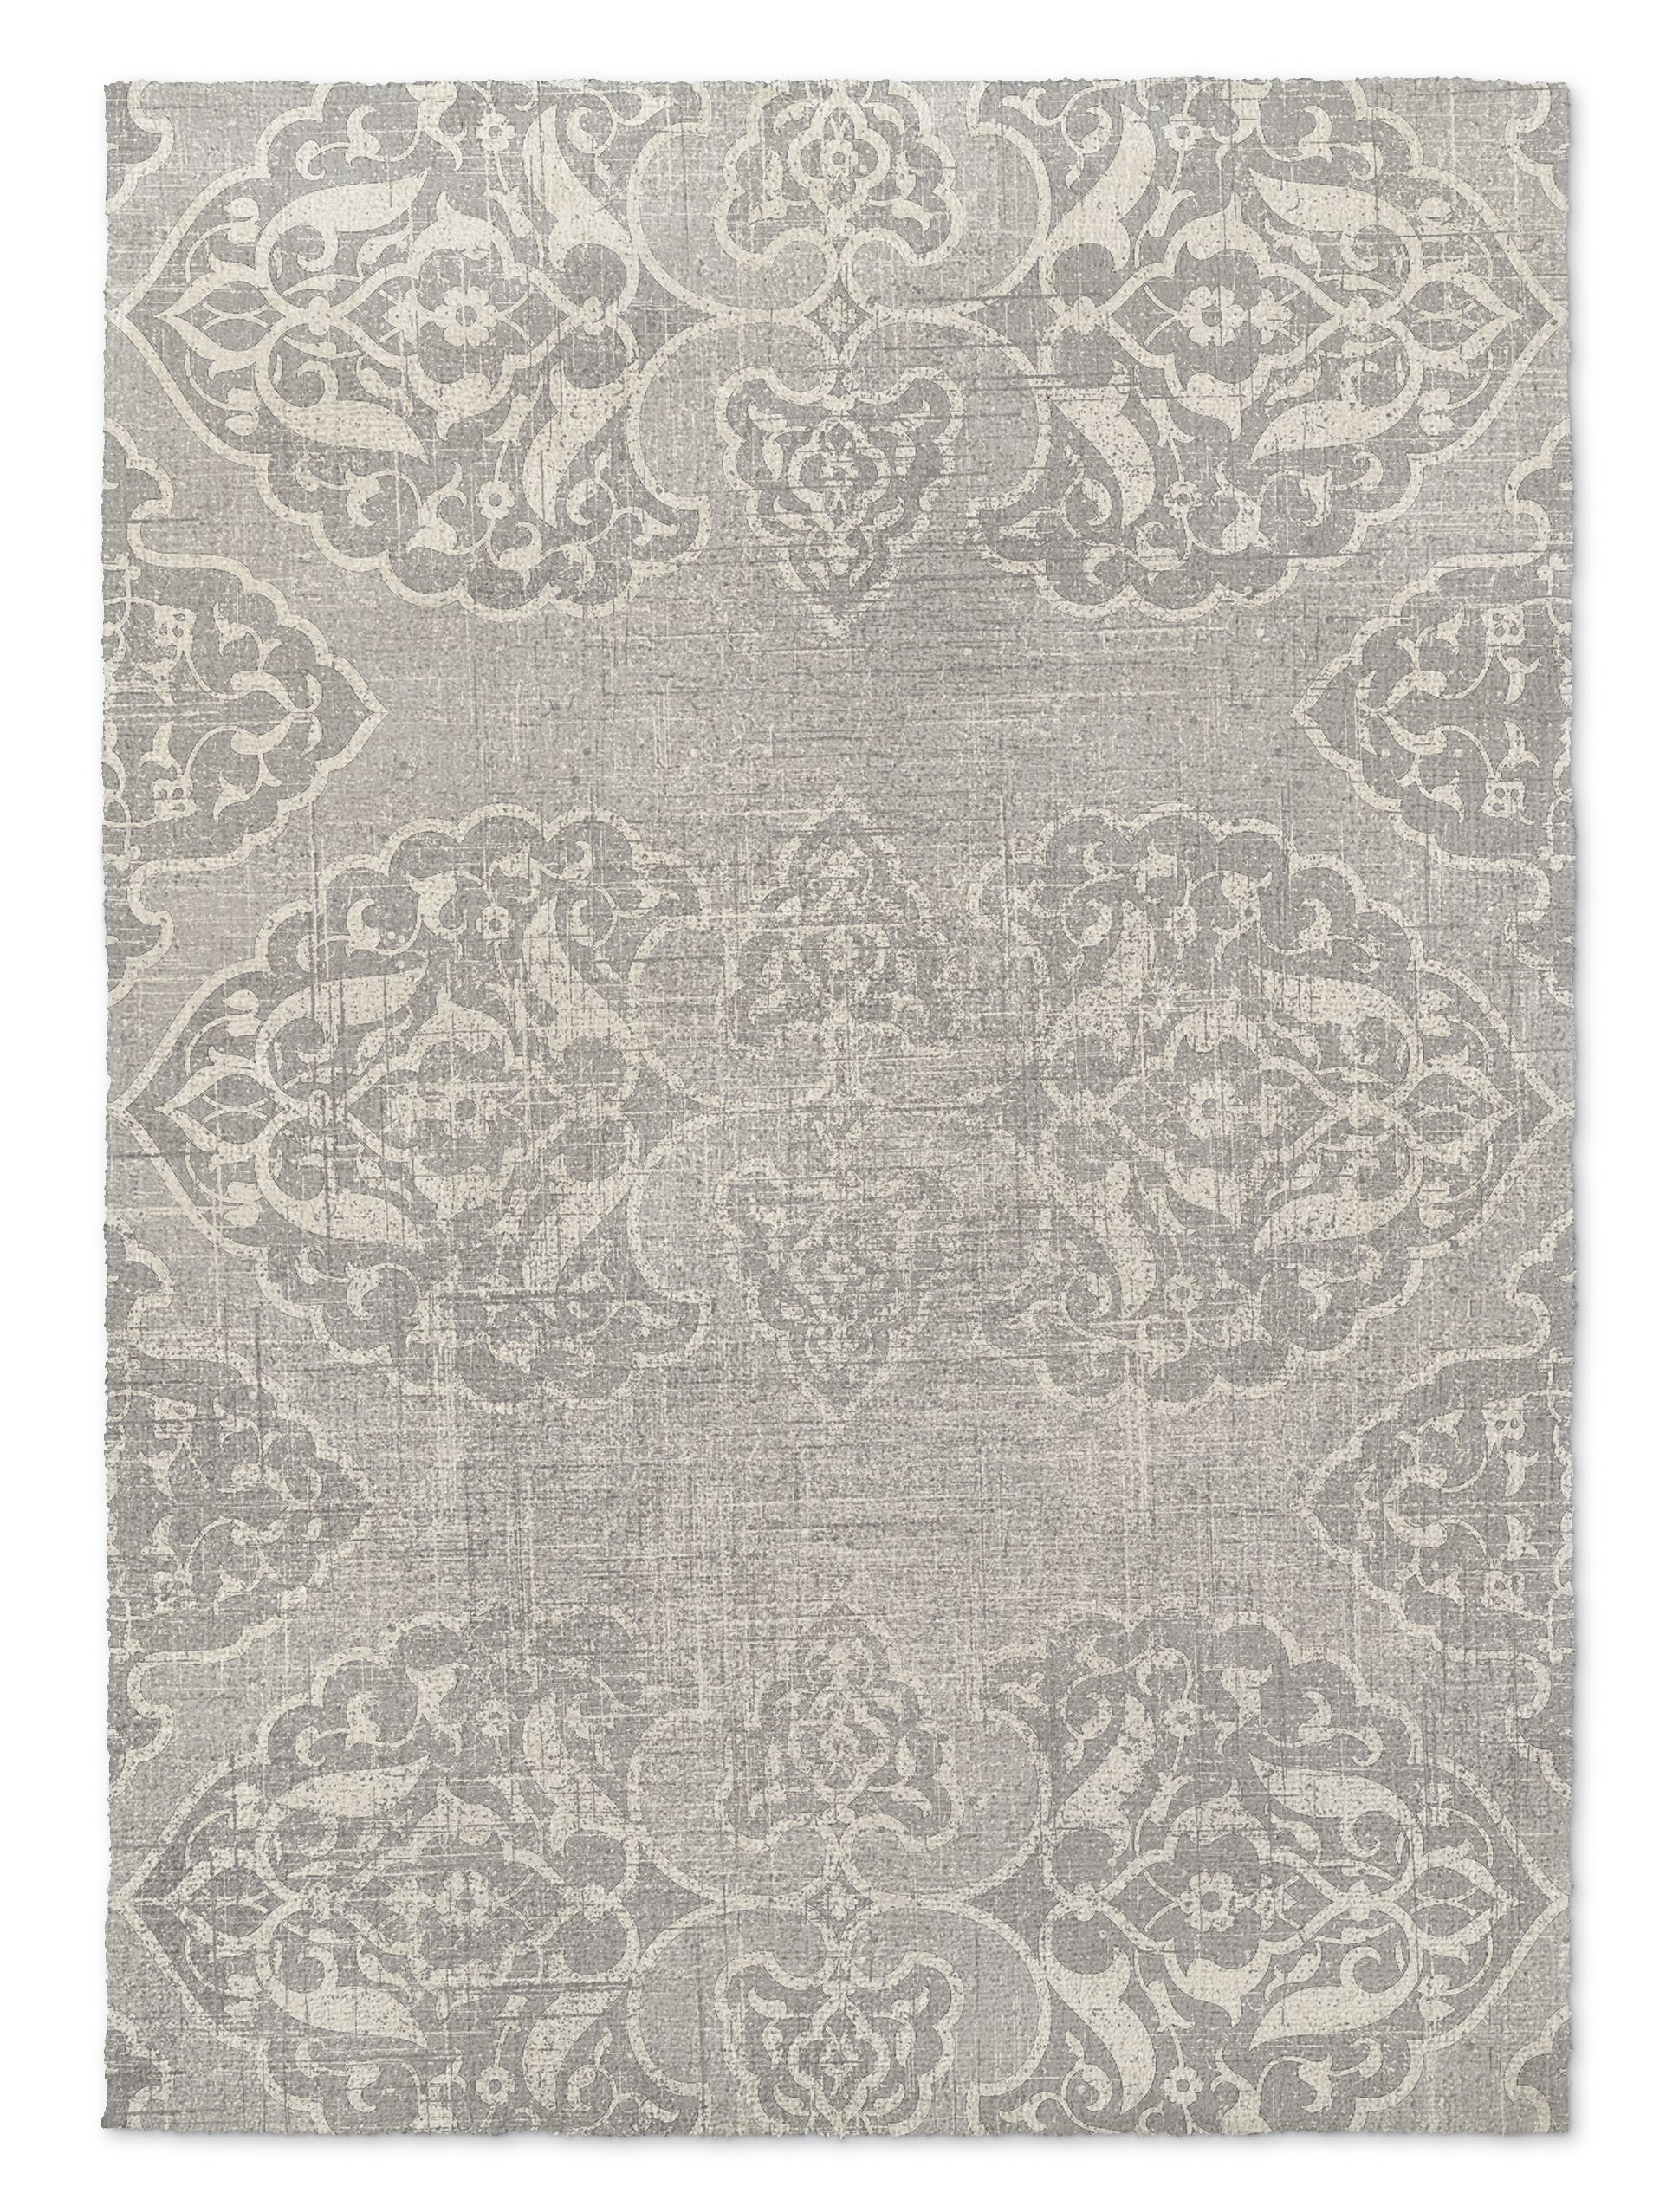 Beige/Gray Area Rug Rug Size: Rectangle 8' x 10'